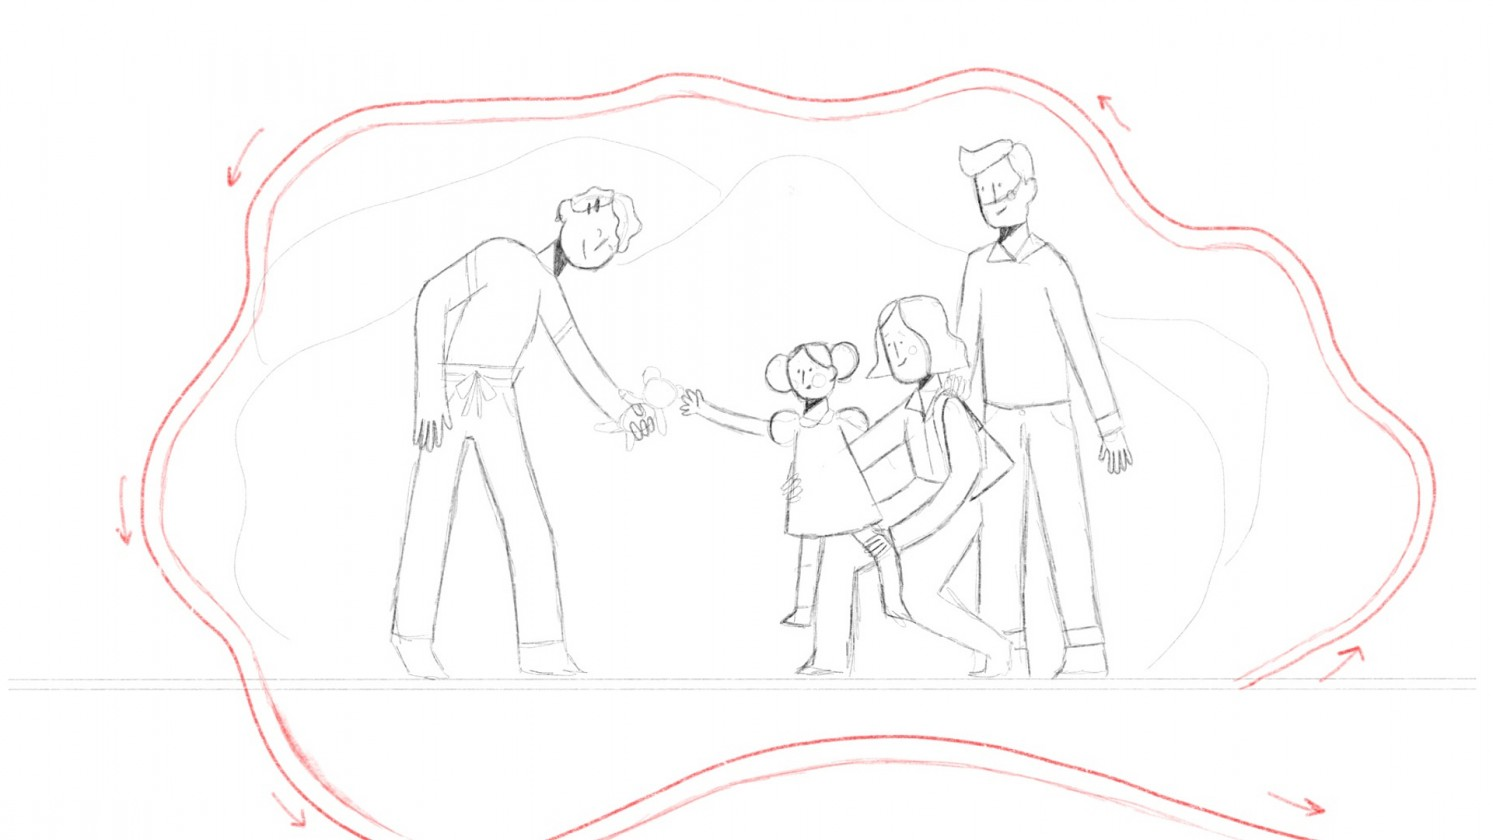 Illustration from Together Trust Storyboard of characters